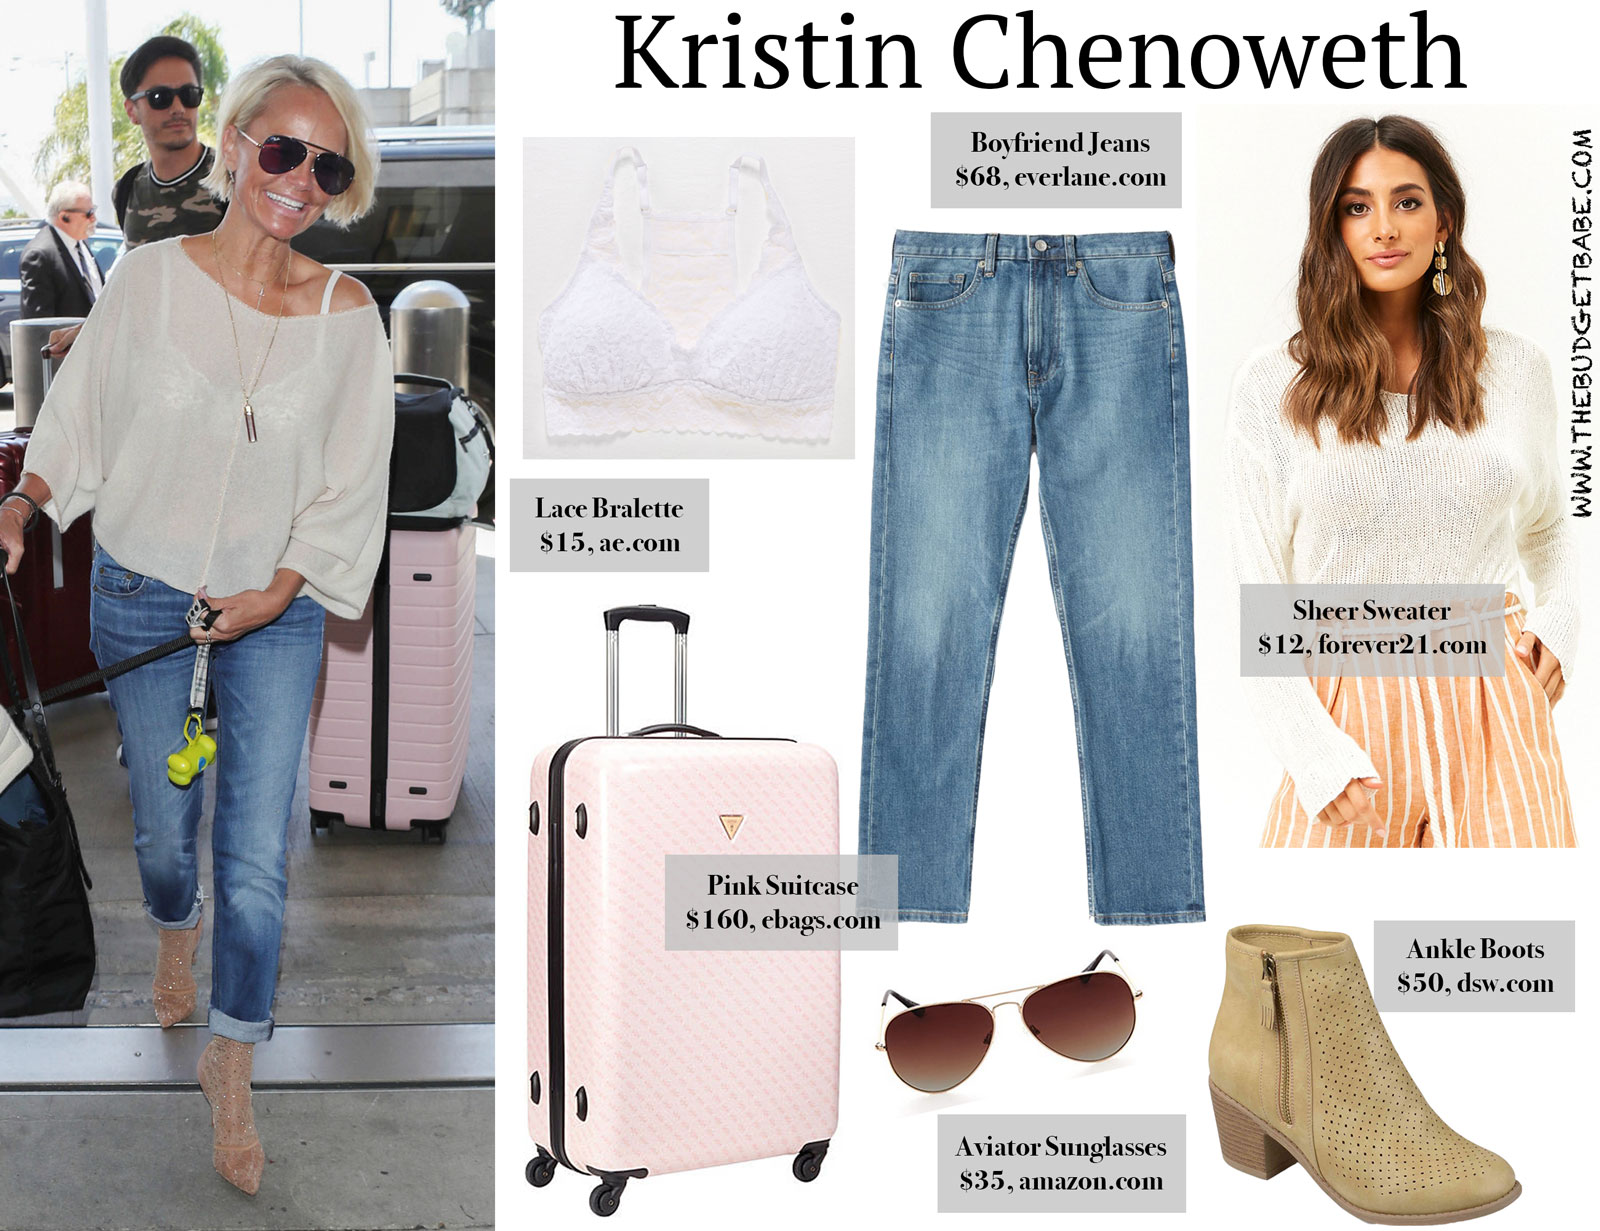 Kristin Chenoweth Travel Outfit and Pink Suitcase for Less